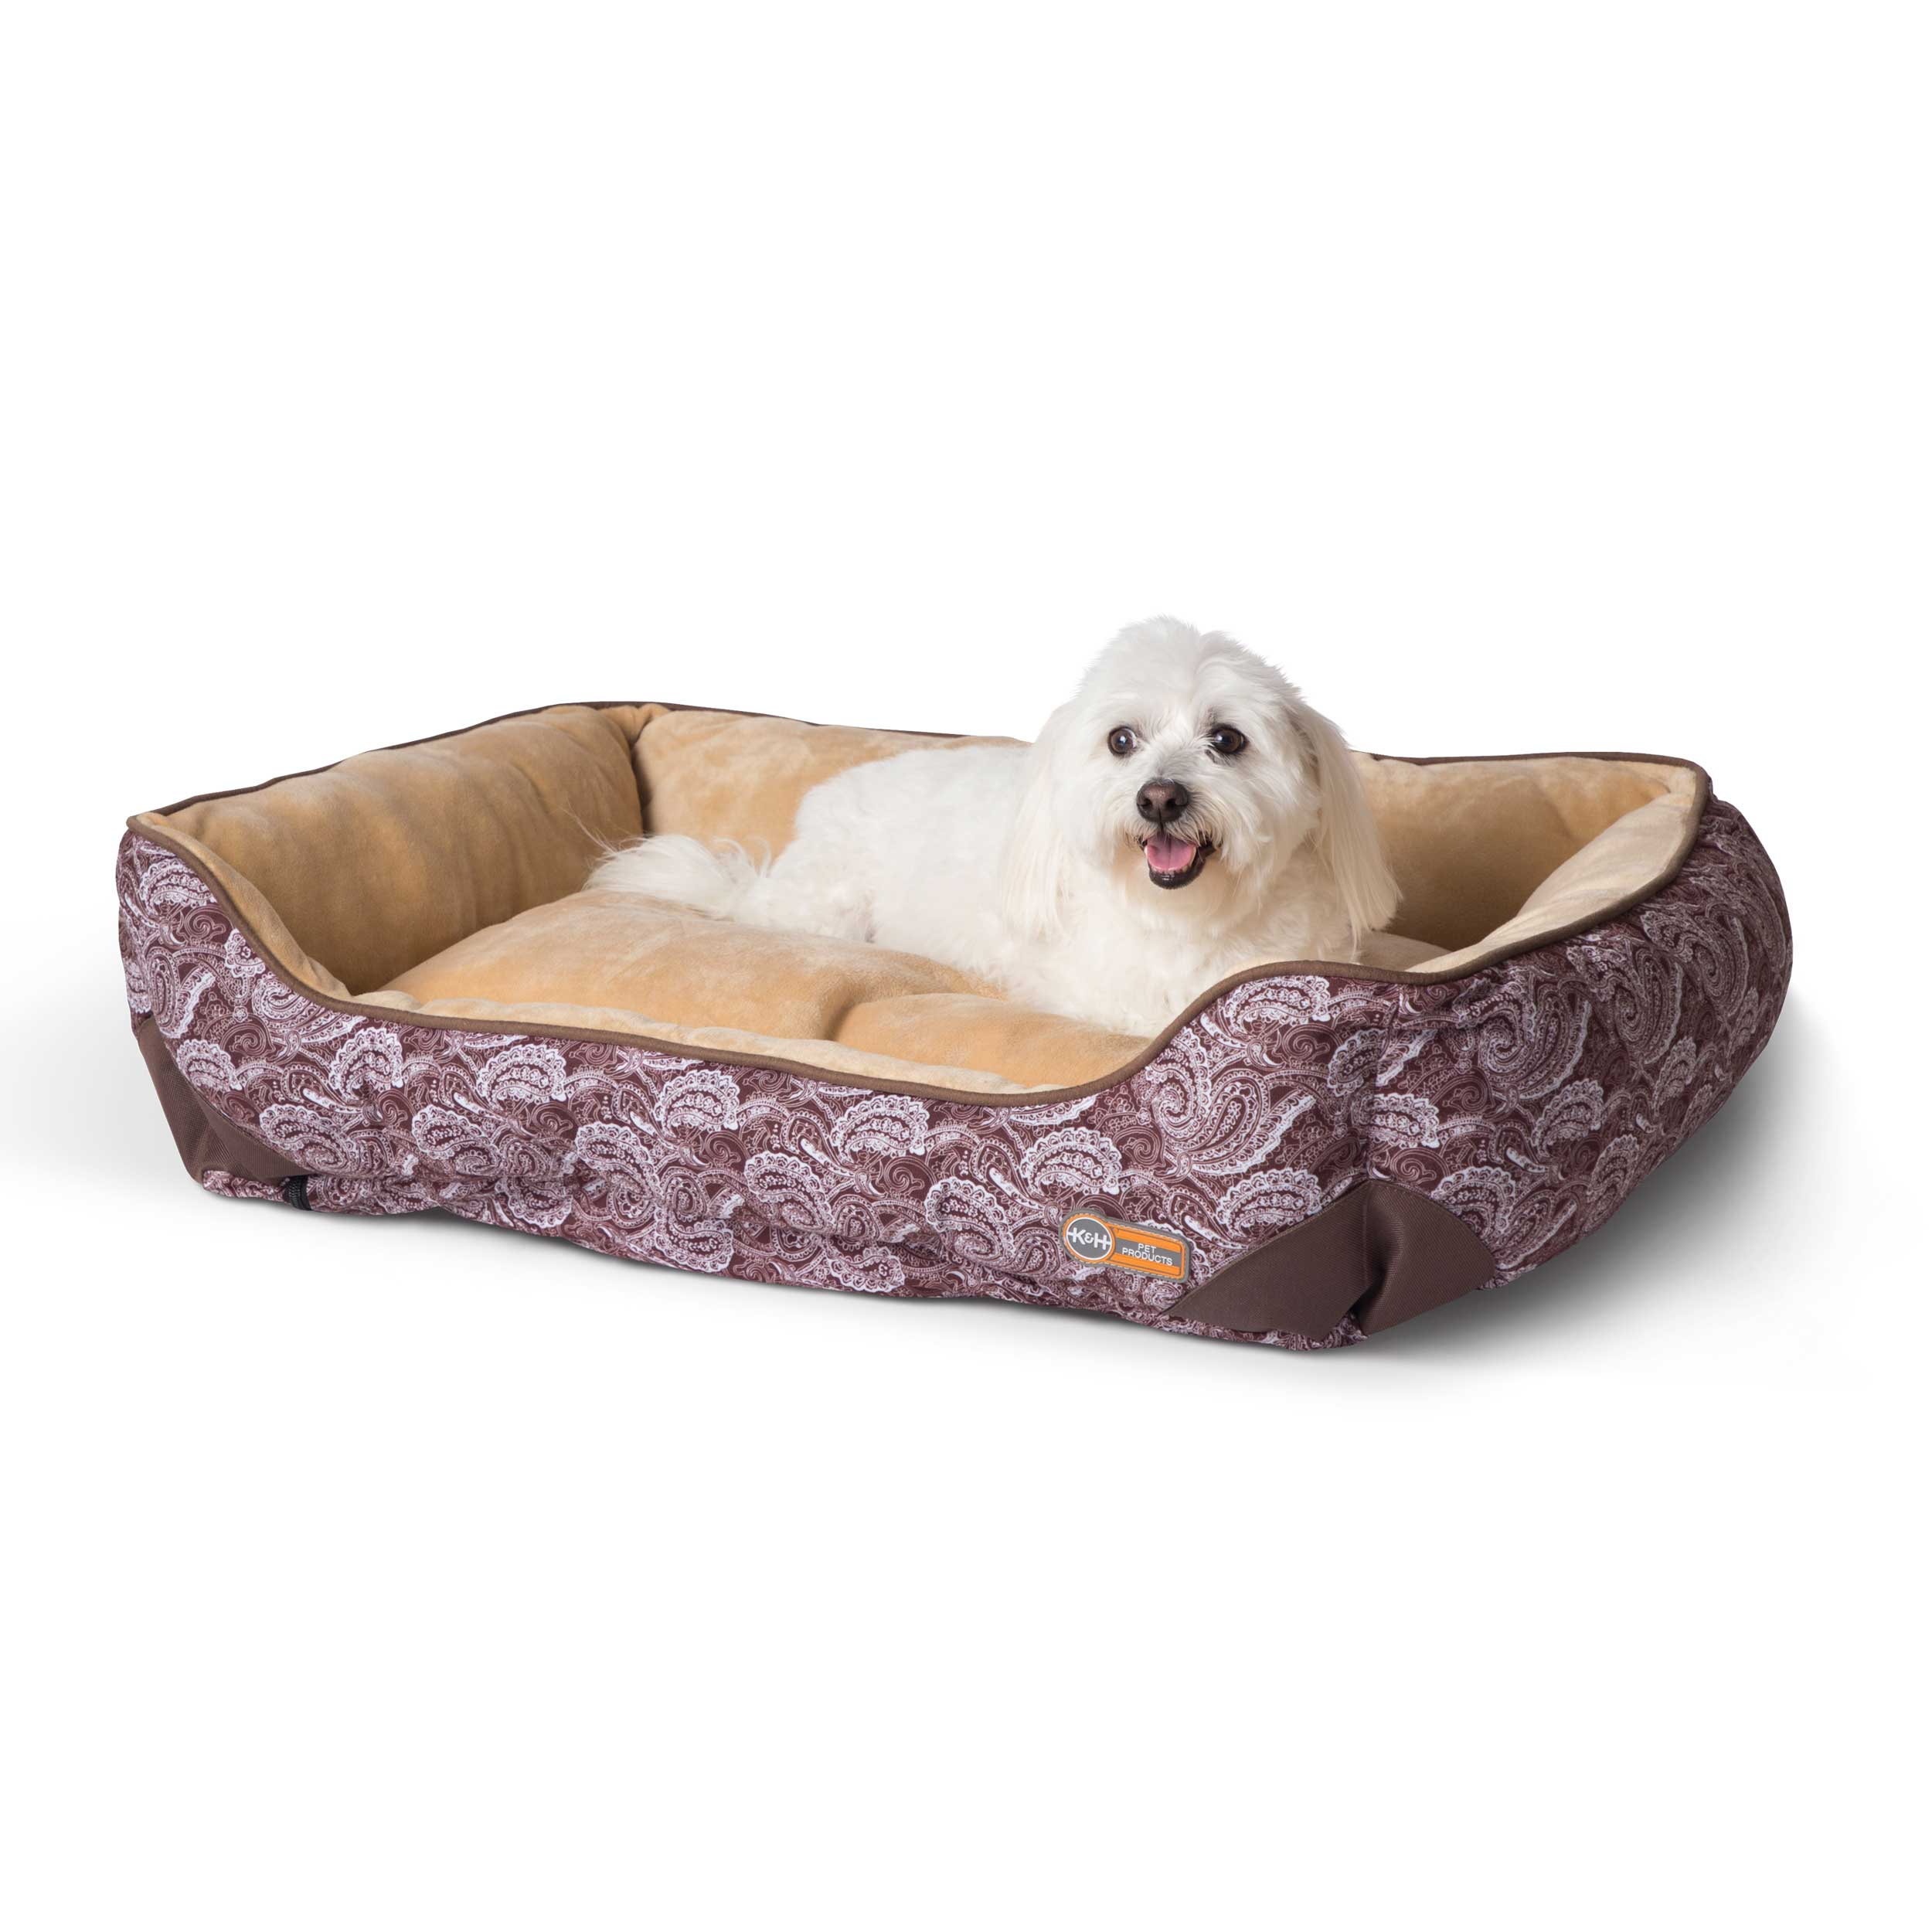 "K&H Pet Products Self-Warming Lounge Sleeper Medim Brown 24"" x 30"" x 9"""